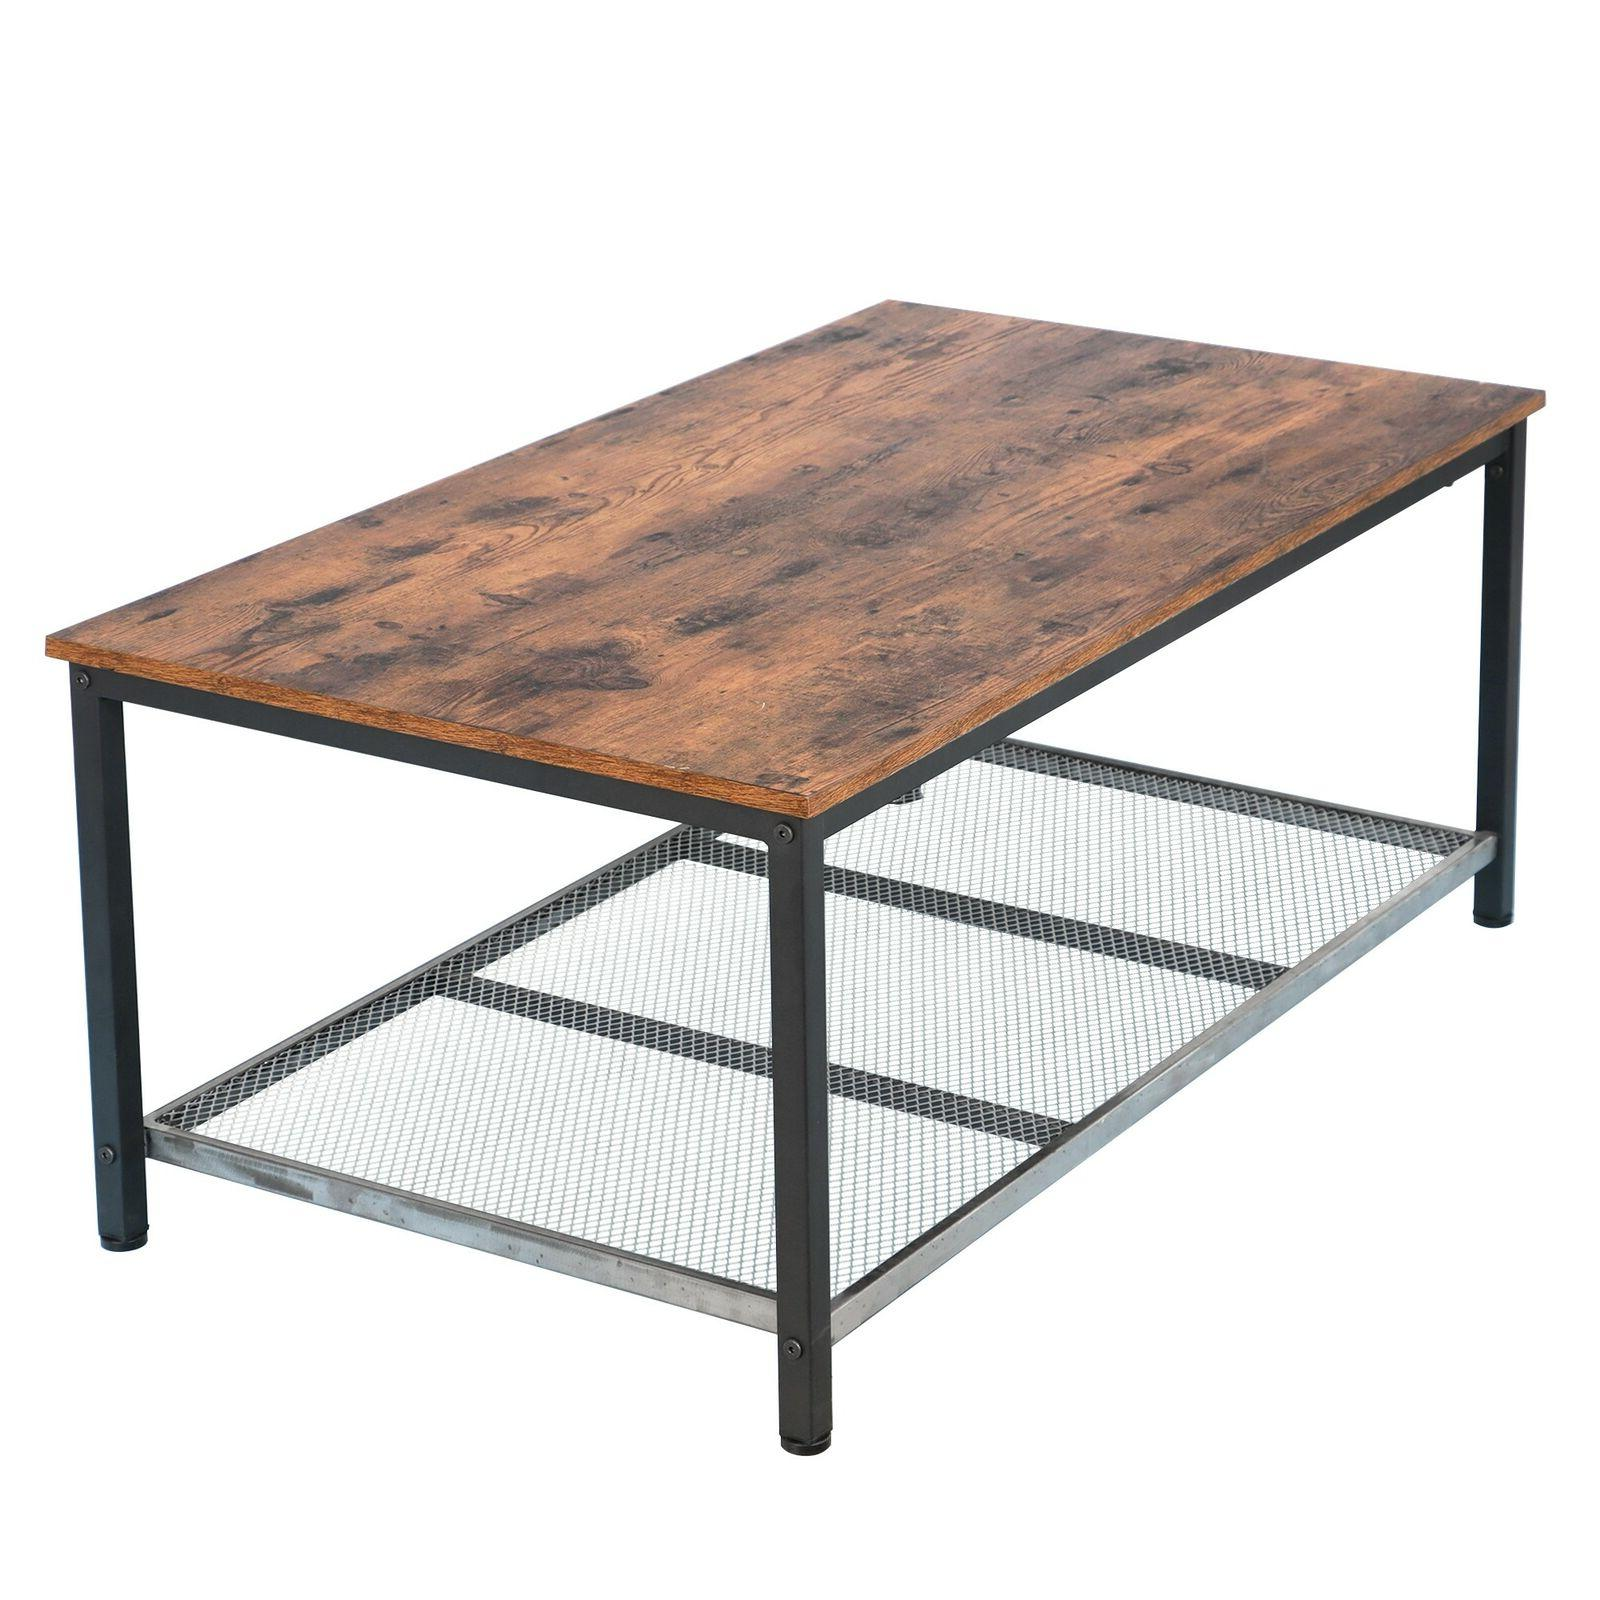 Industrial Coffee Table Storage Shelf For Room